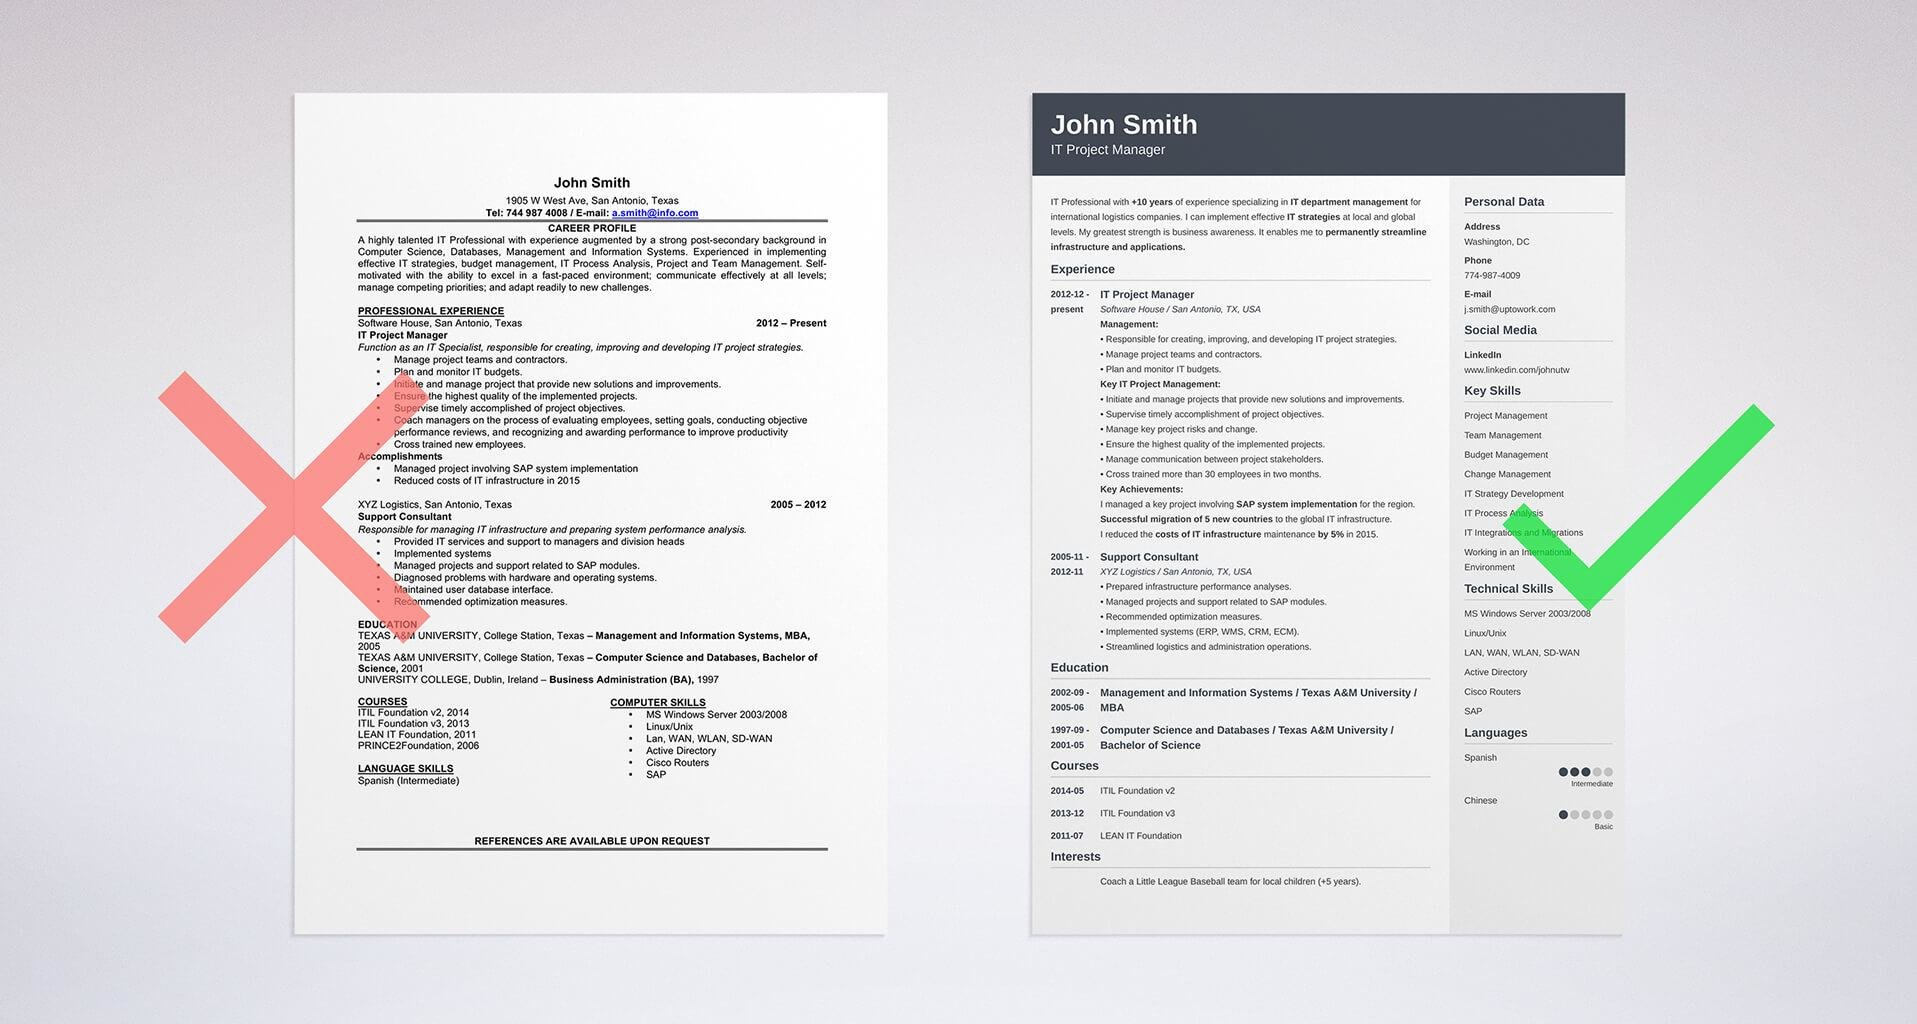 resume formats - Most Common Resume Format